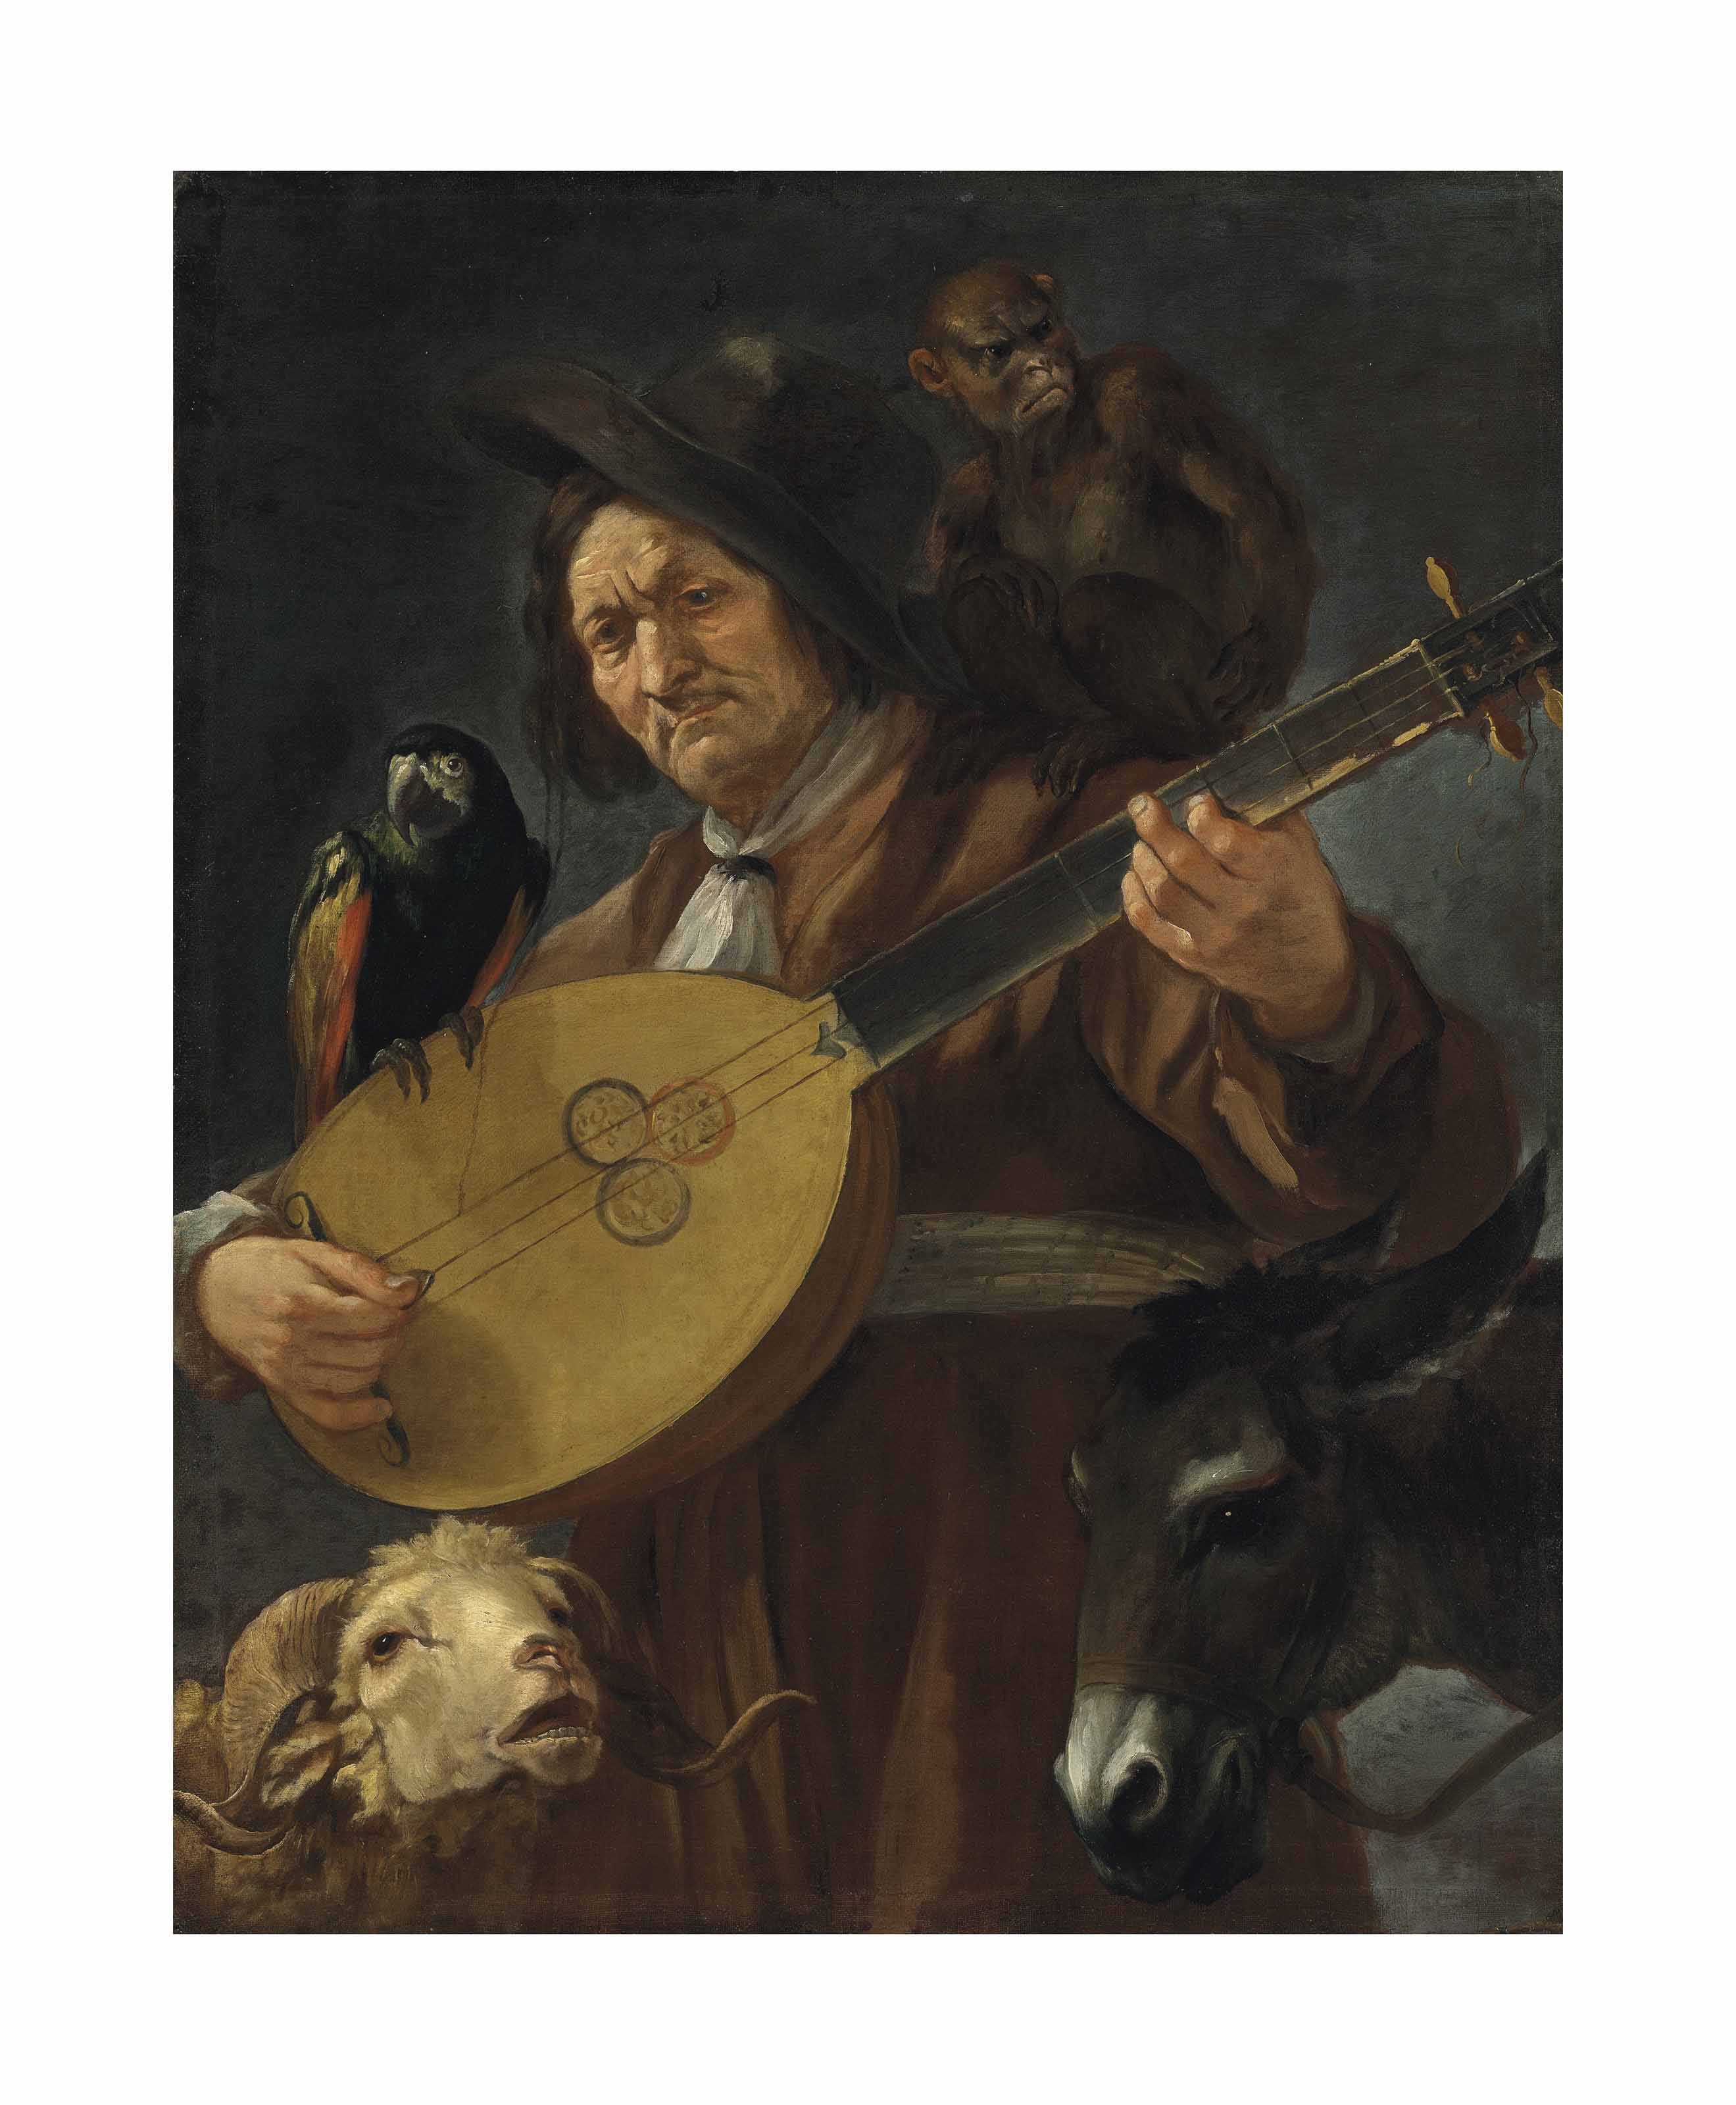 An Allegory: a man playing the calascione surrounded by a monkey, a parrot, a donkey and a ram